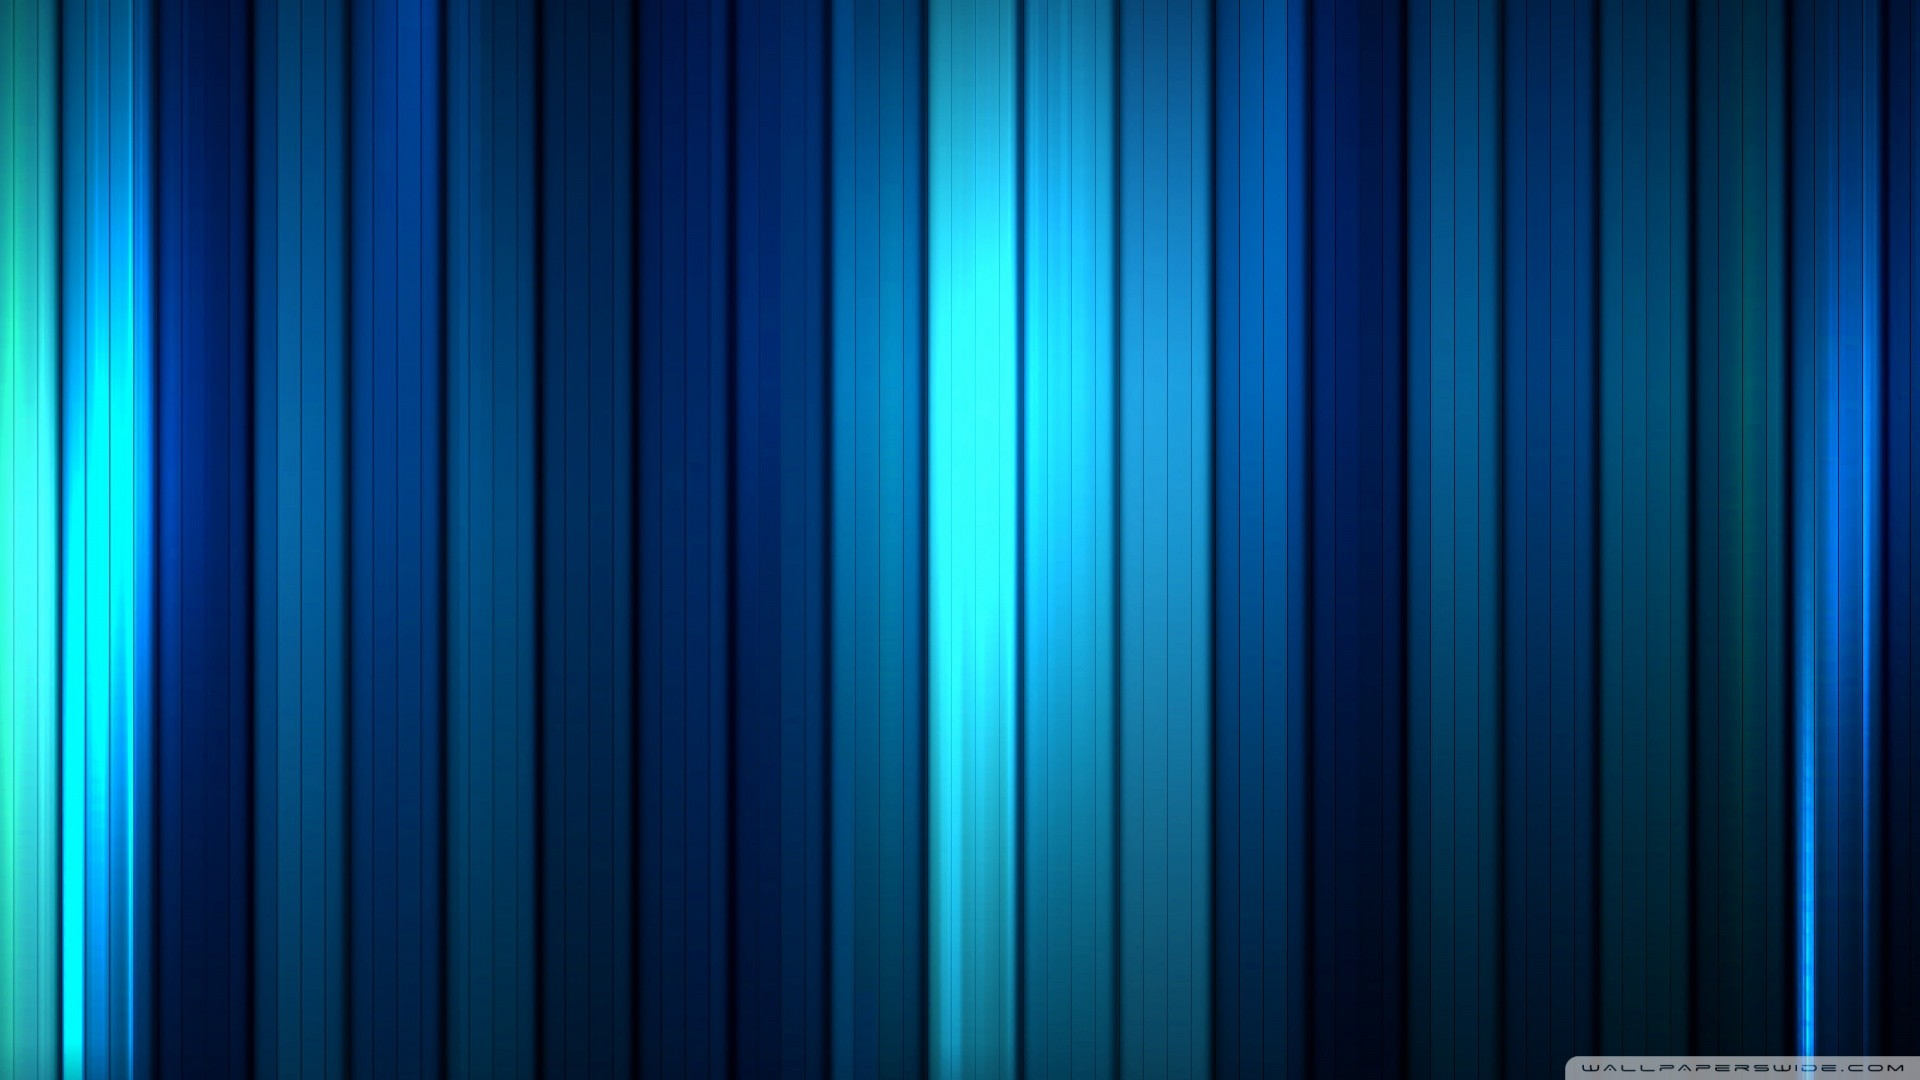 1920x1080 Motion Stripes Blue Wallpaper  Motion, Stripes, Blue